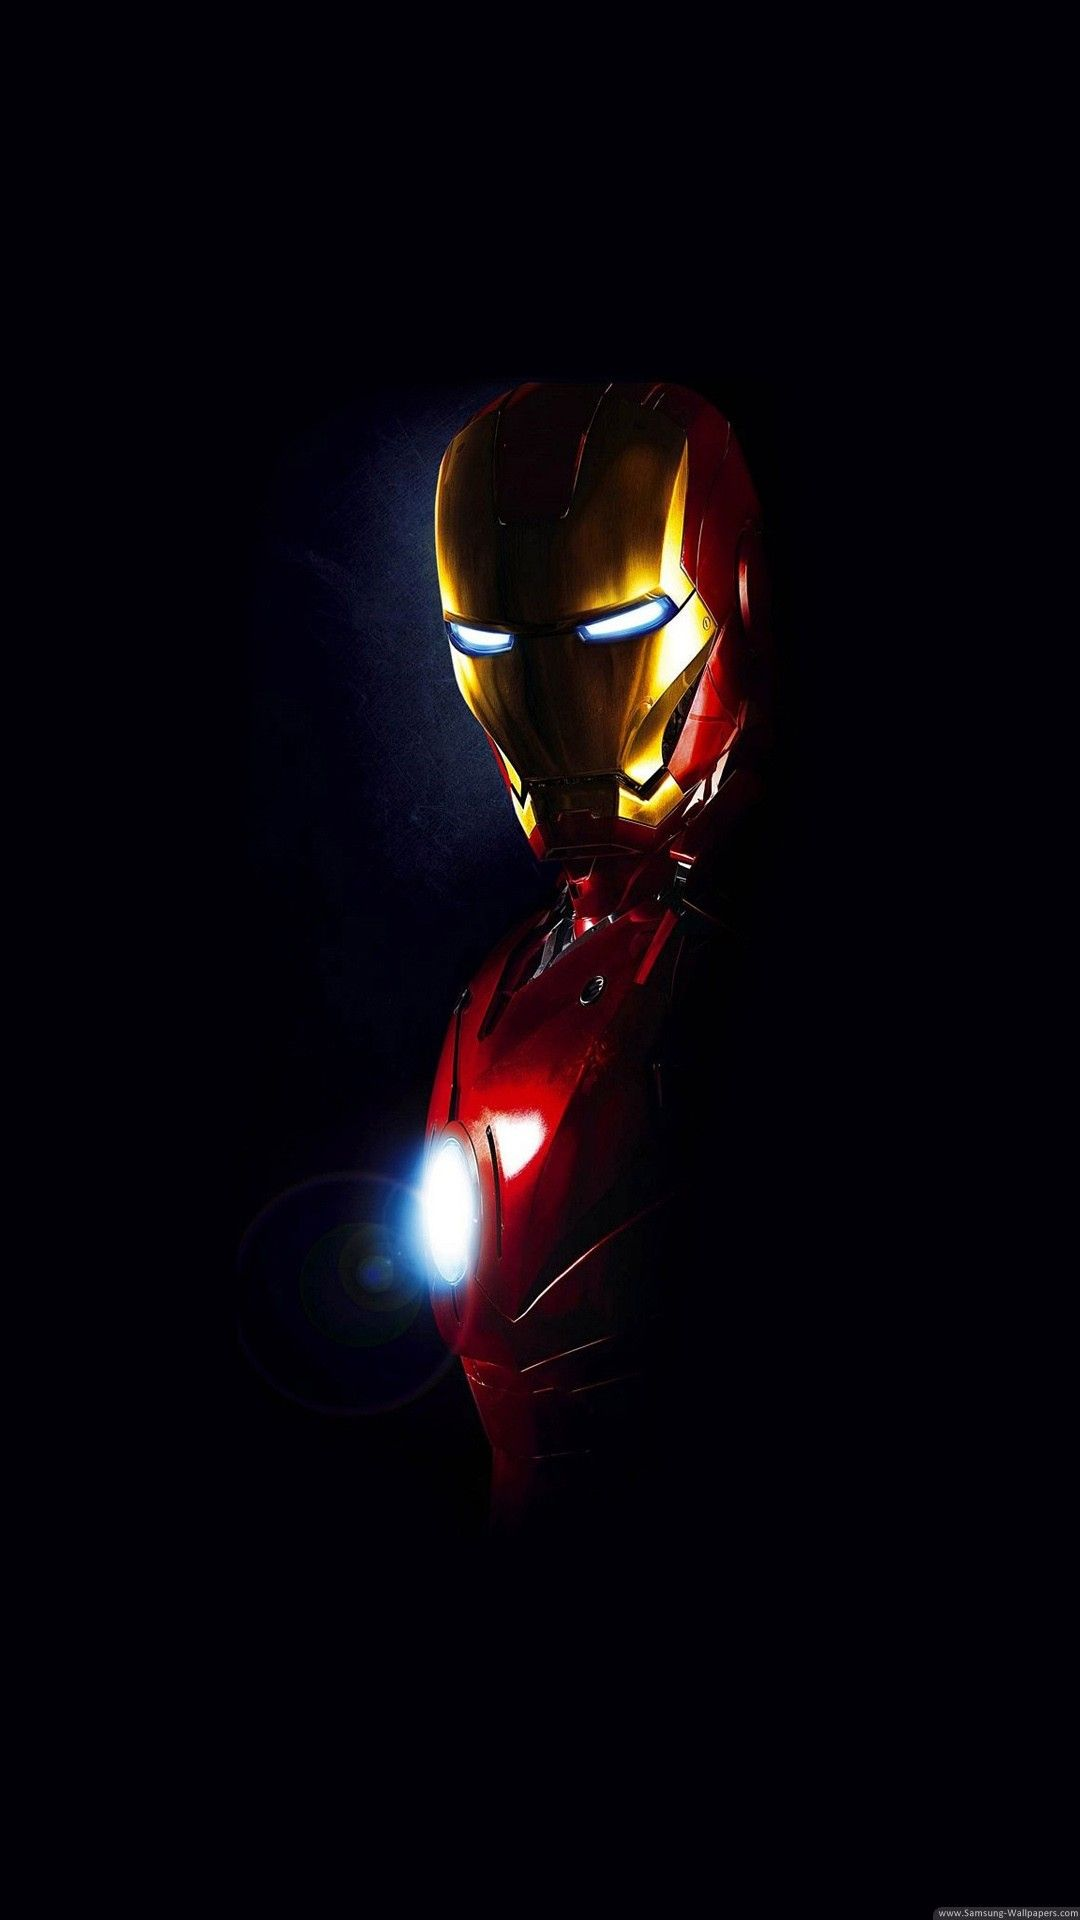 Movies Iphone 6 Plus Wallpapers Iron Man Arc Reactor Glow Iphone